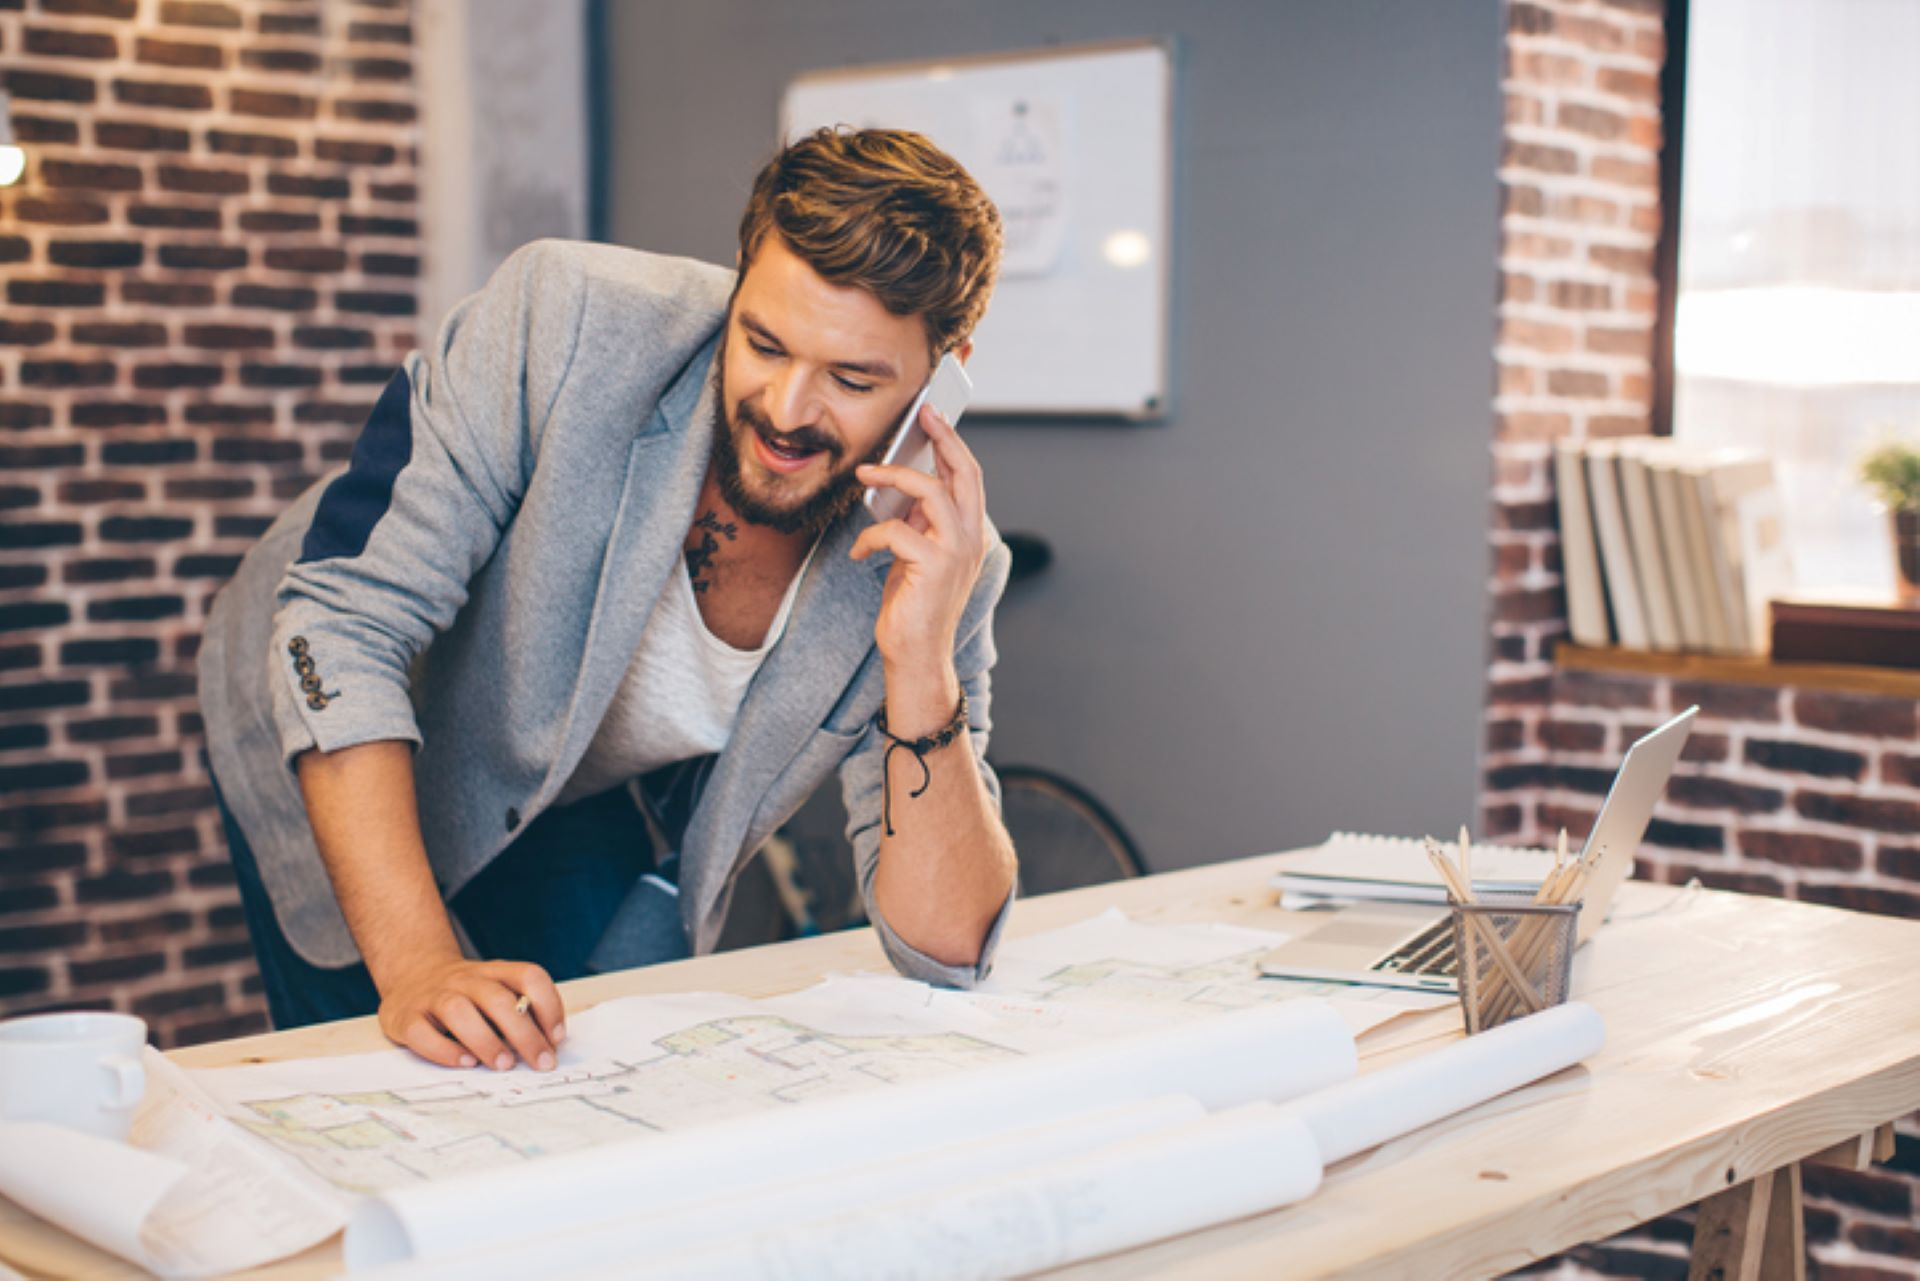 man-on-phone-while-leaning-over-table-with-architectural-plans